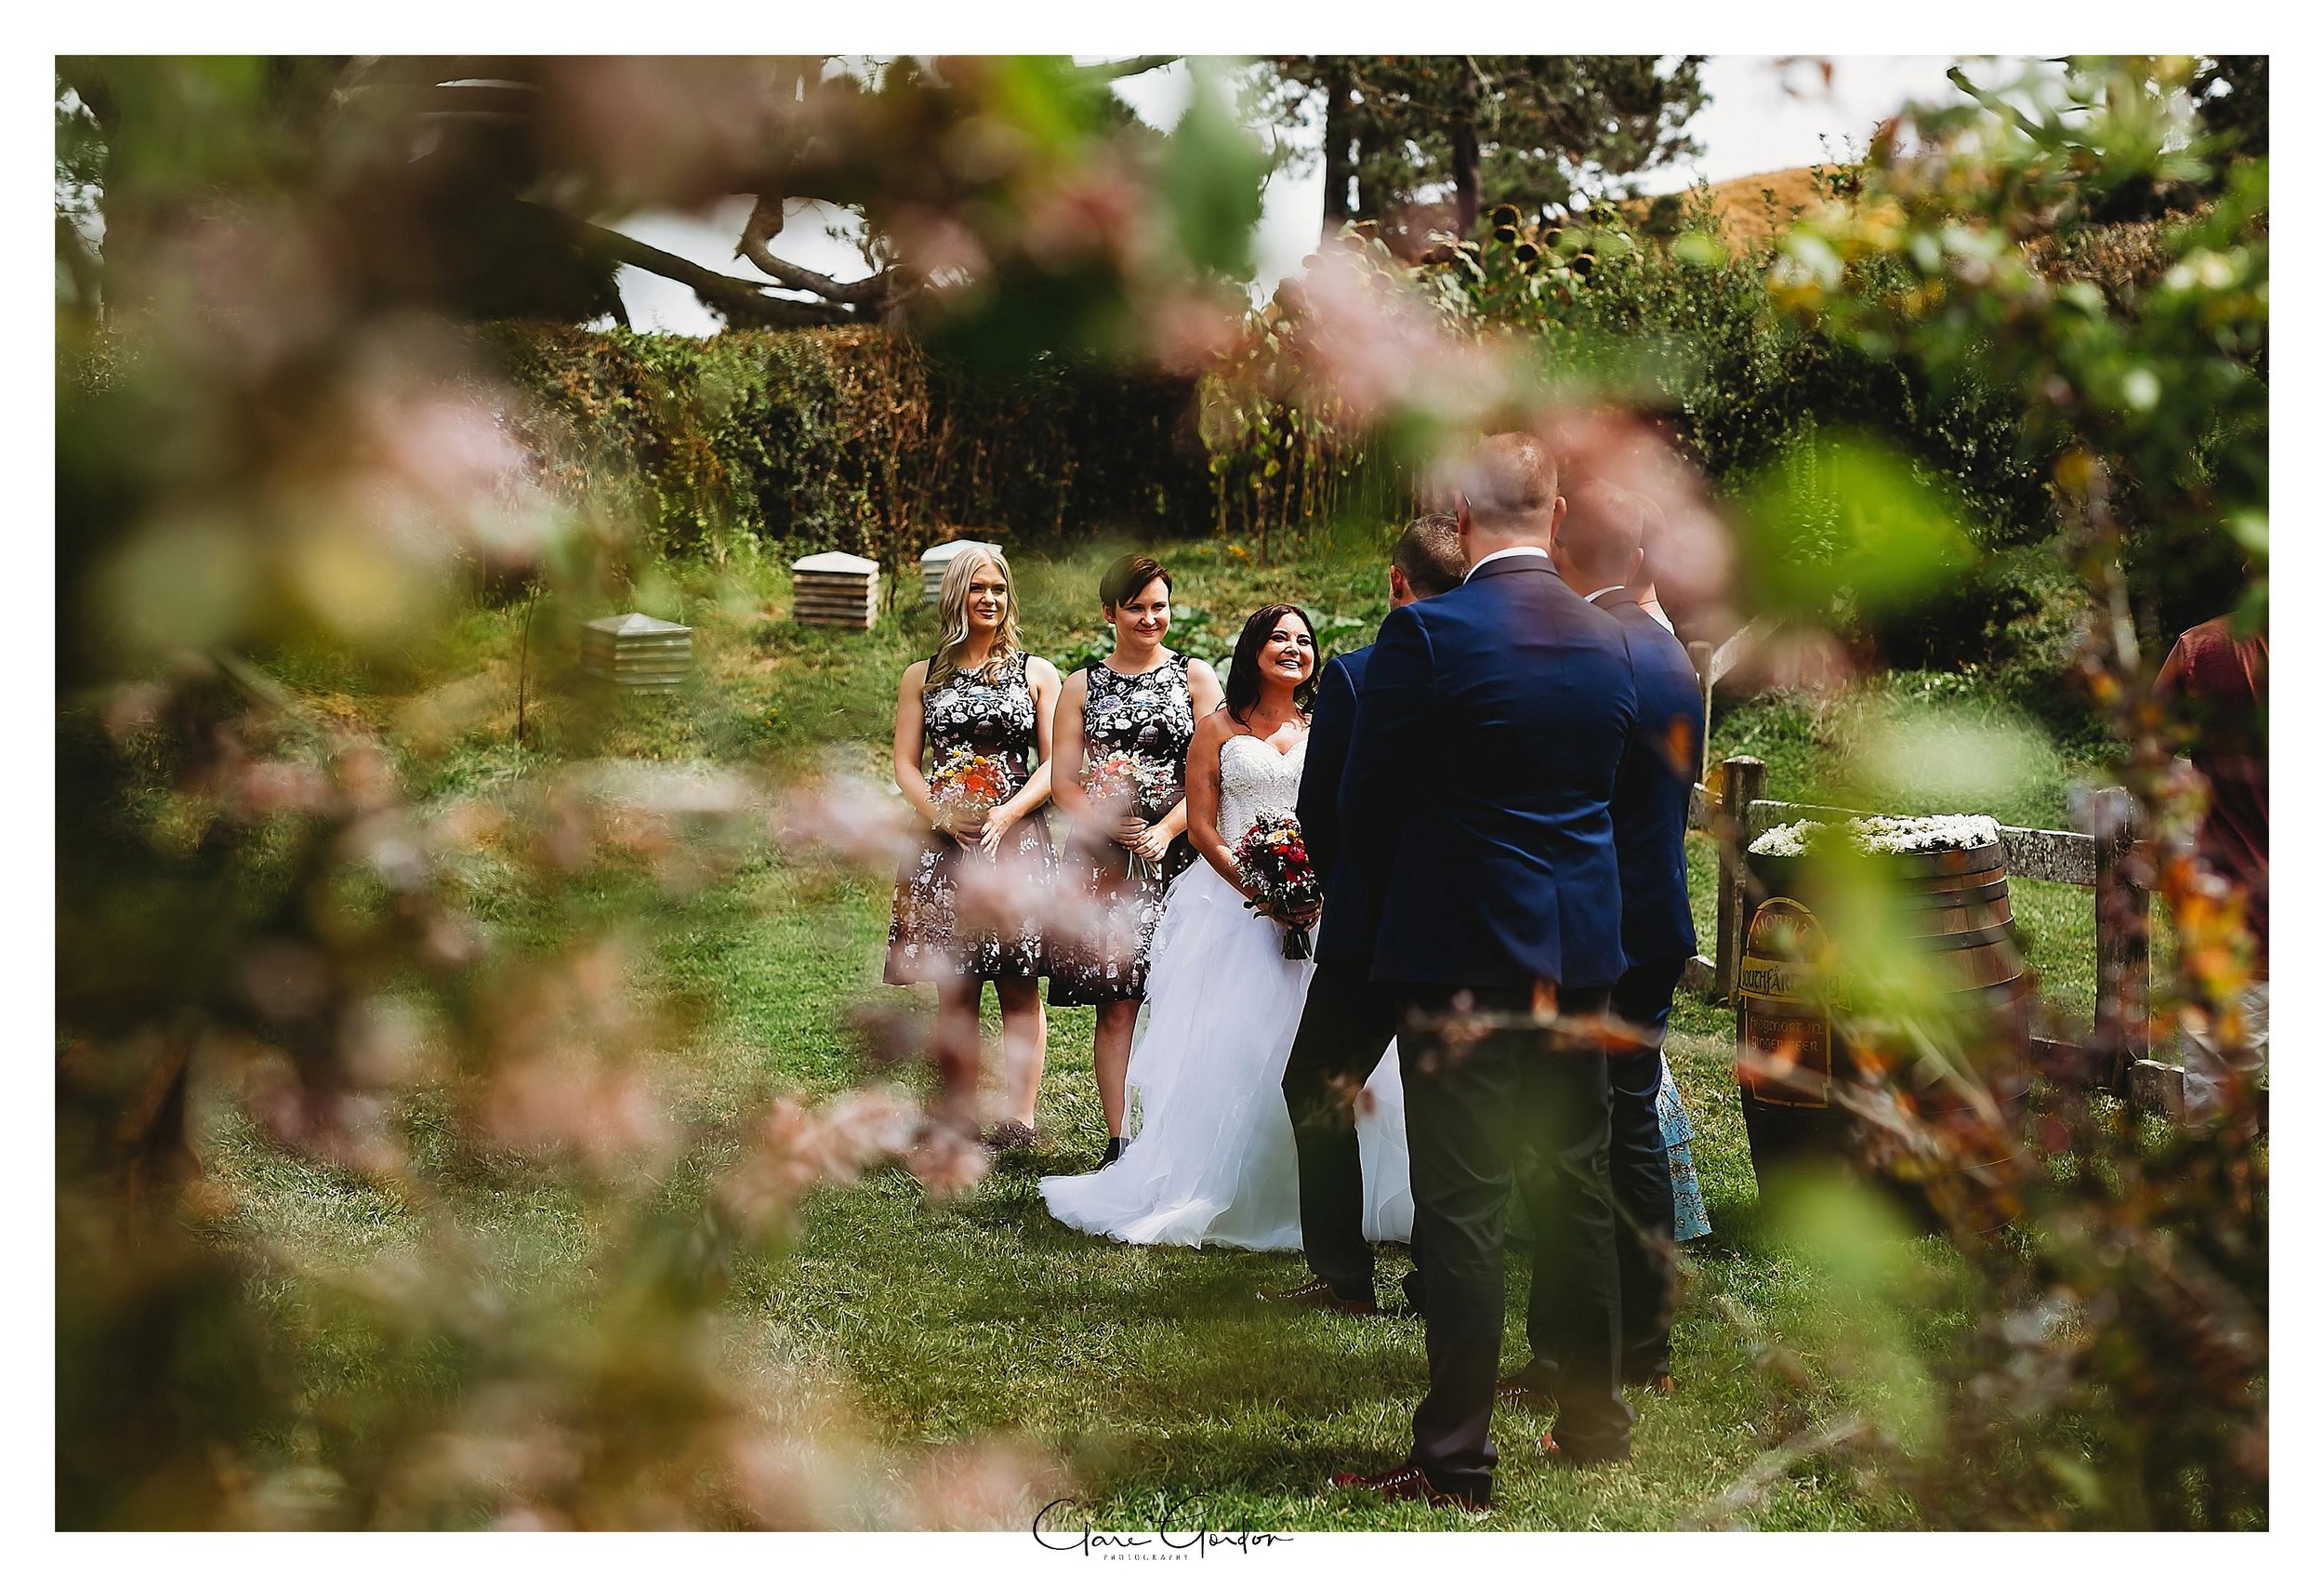 Hobbiton-wedding-bride-and-groom-getting-married